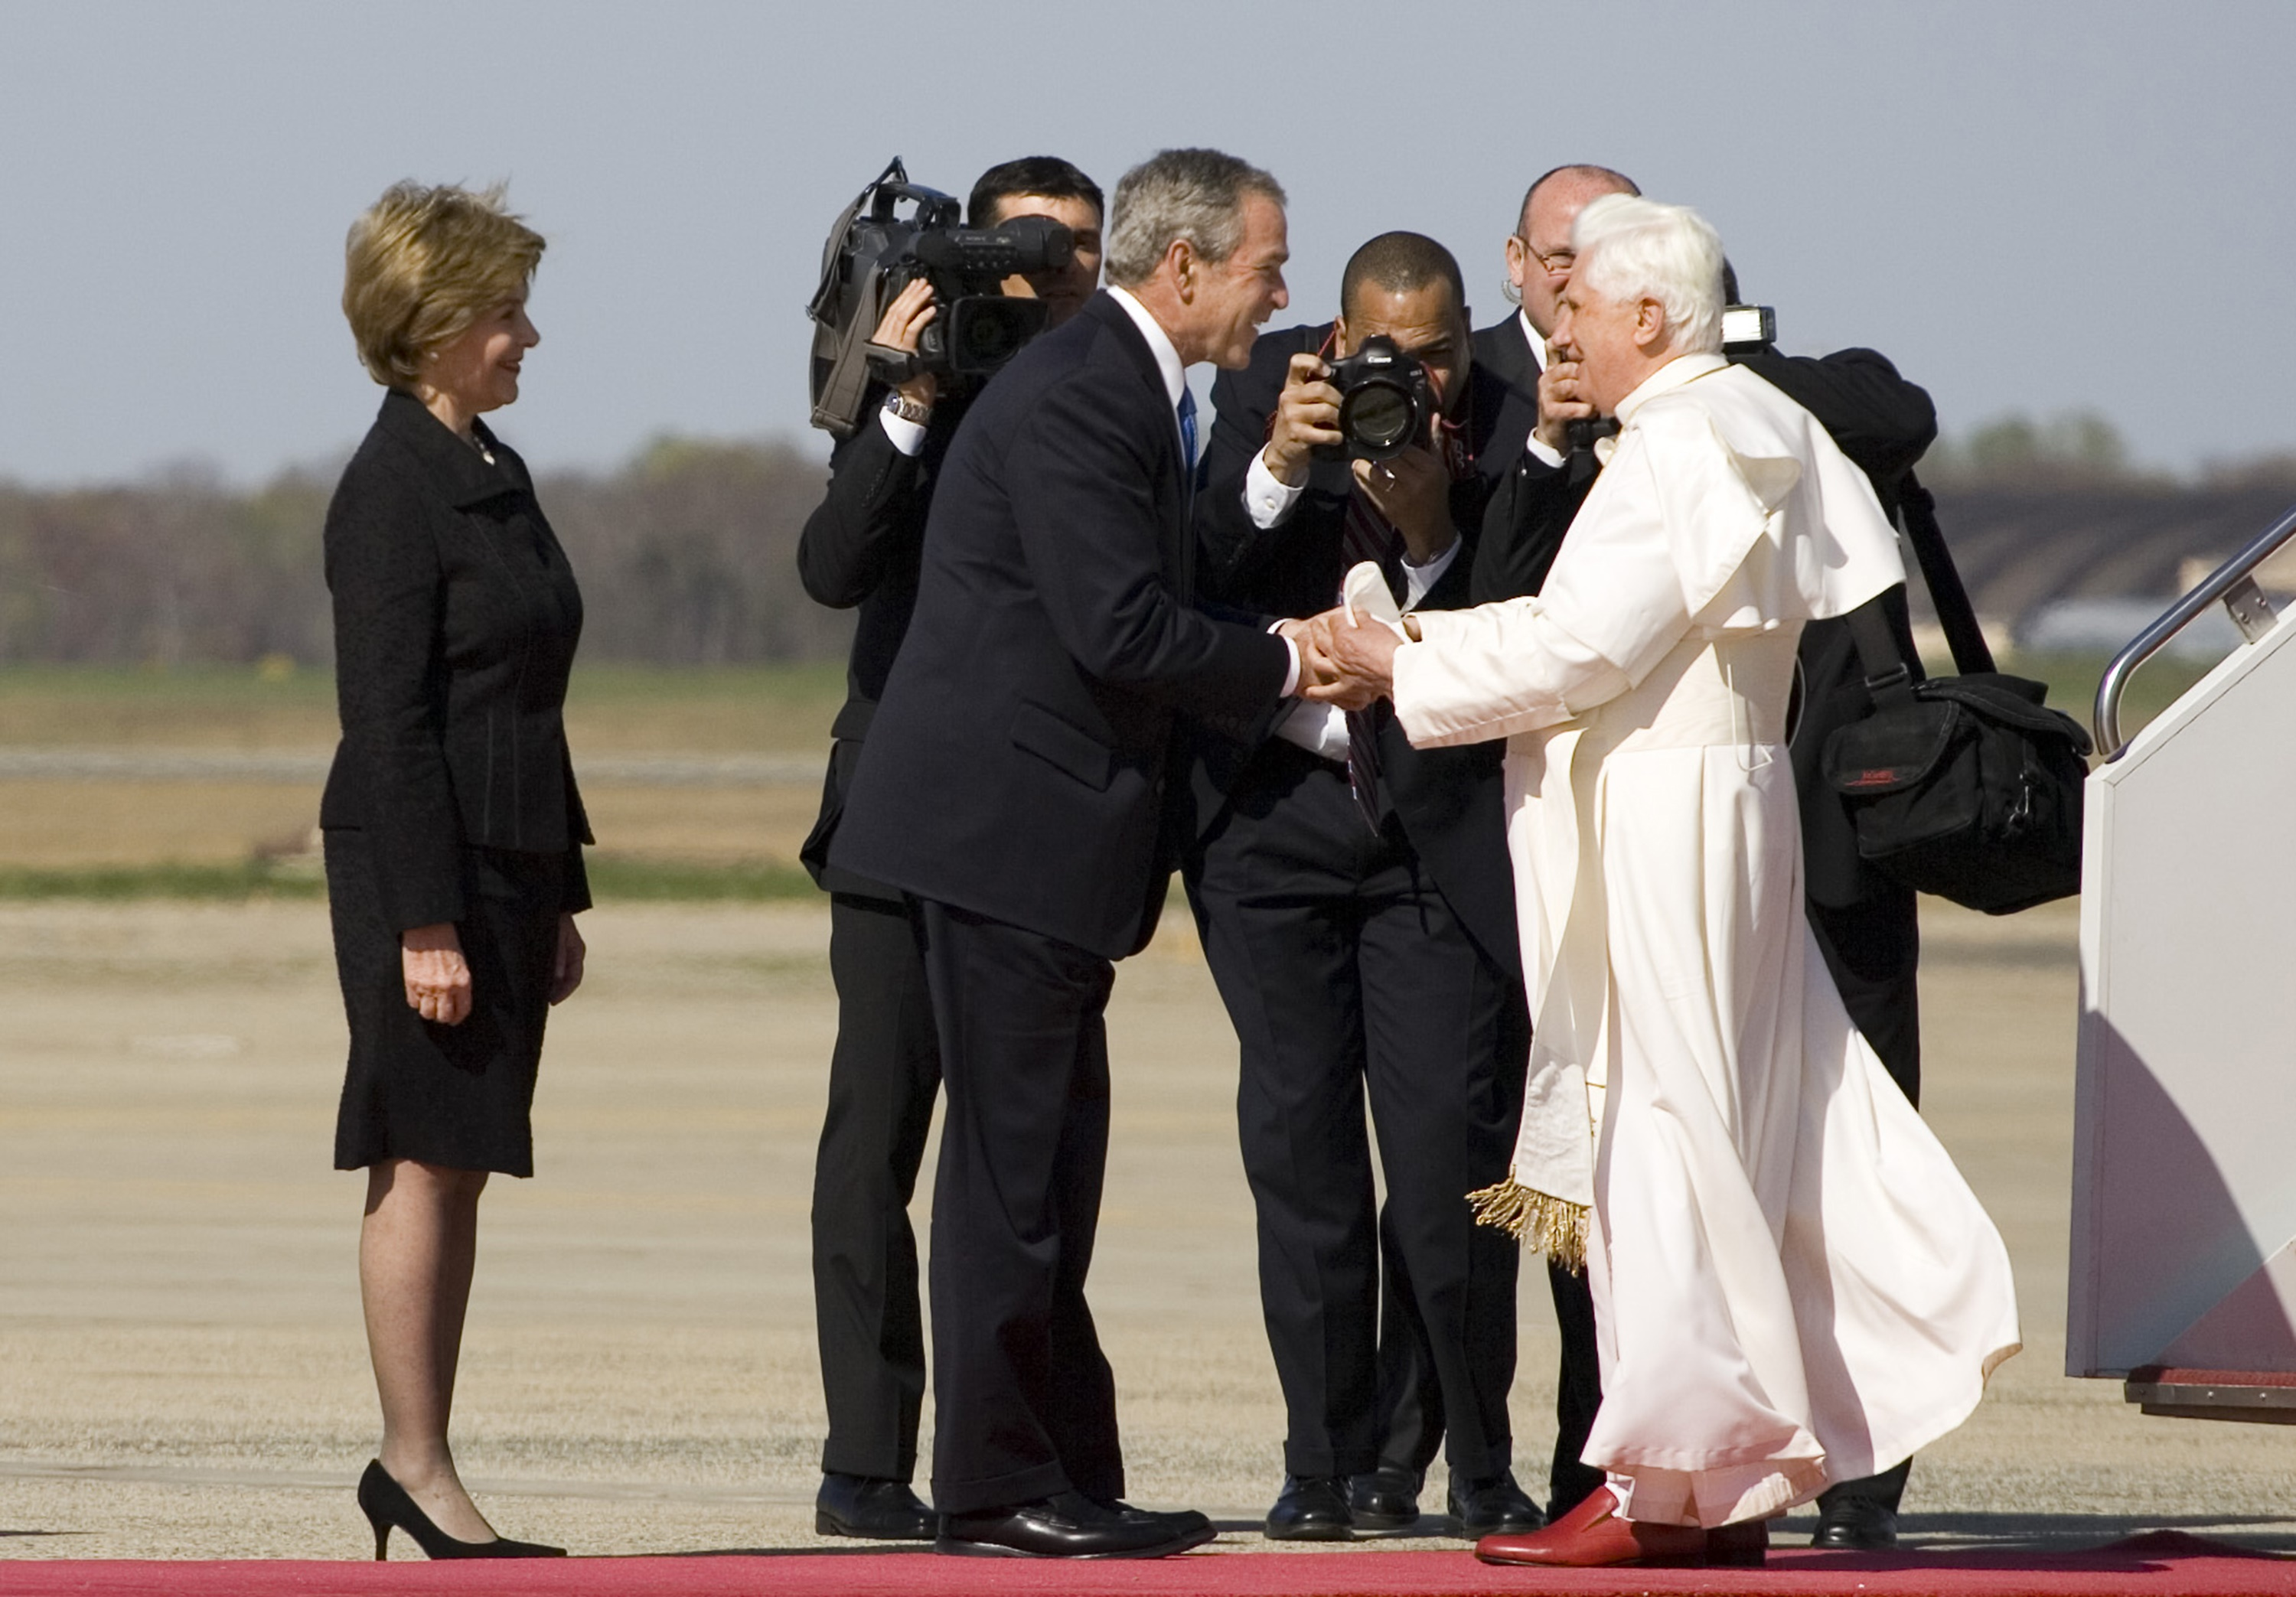 President George W. Bush and Laura Bush Greet Pope Benedict XVI on His Arrival at Andrews Air Force Base, Maryland, April 15, 2008. (National Archives Identifier 7582808)